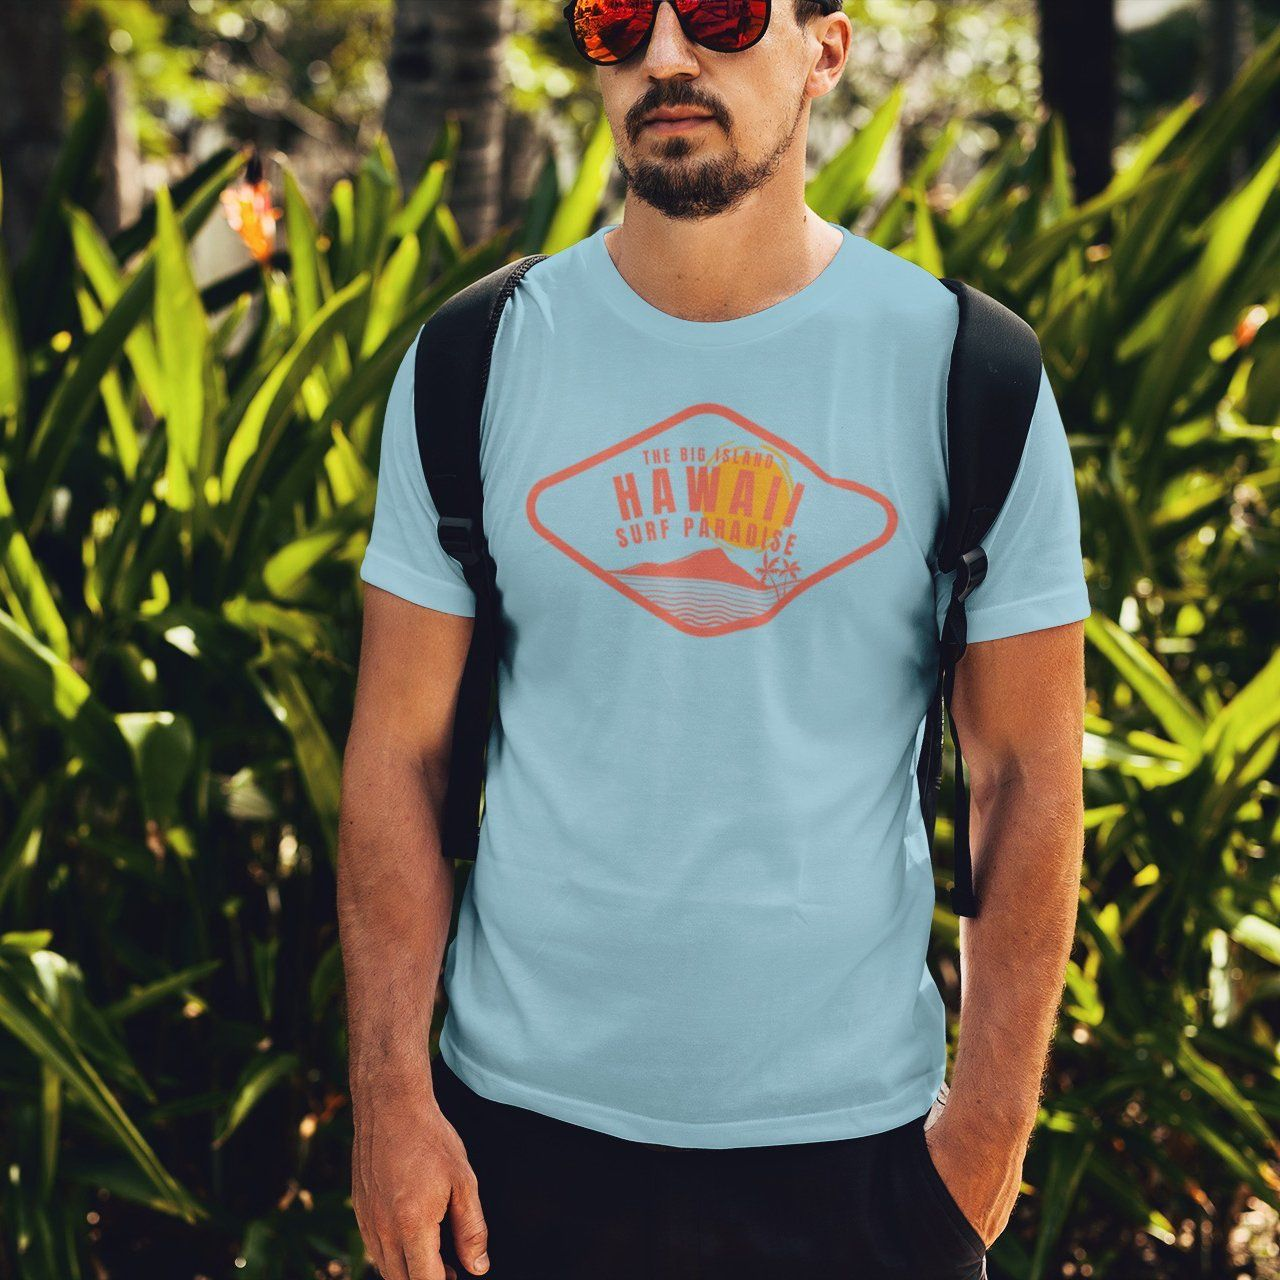 Hawaii Surf Paradise Short sleeve t-shirt